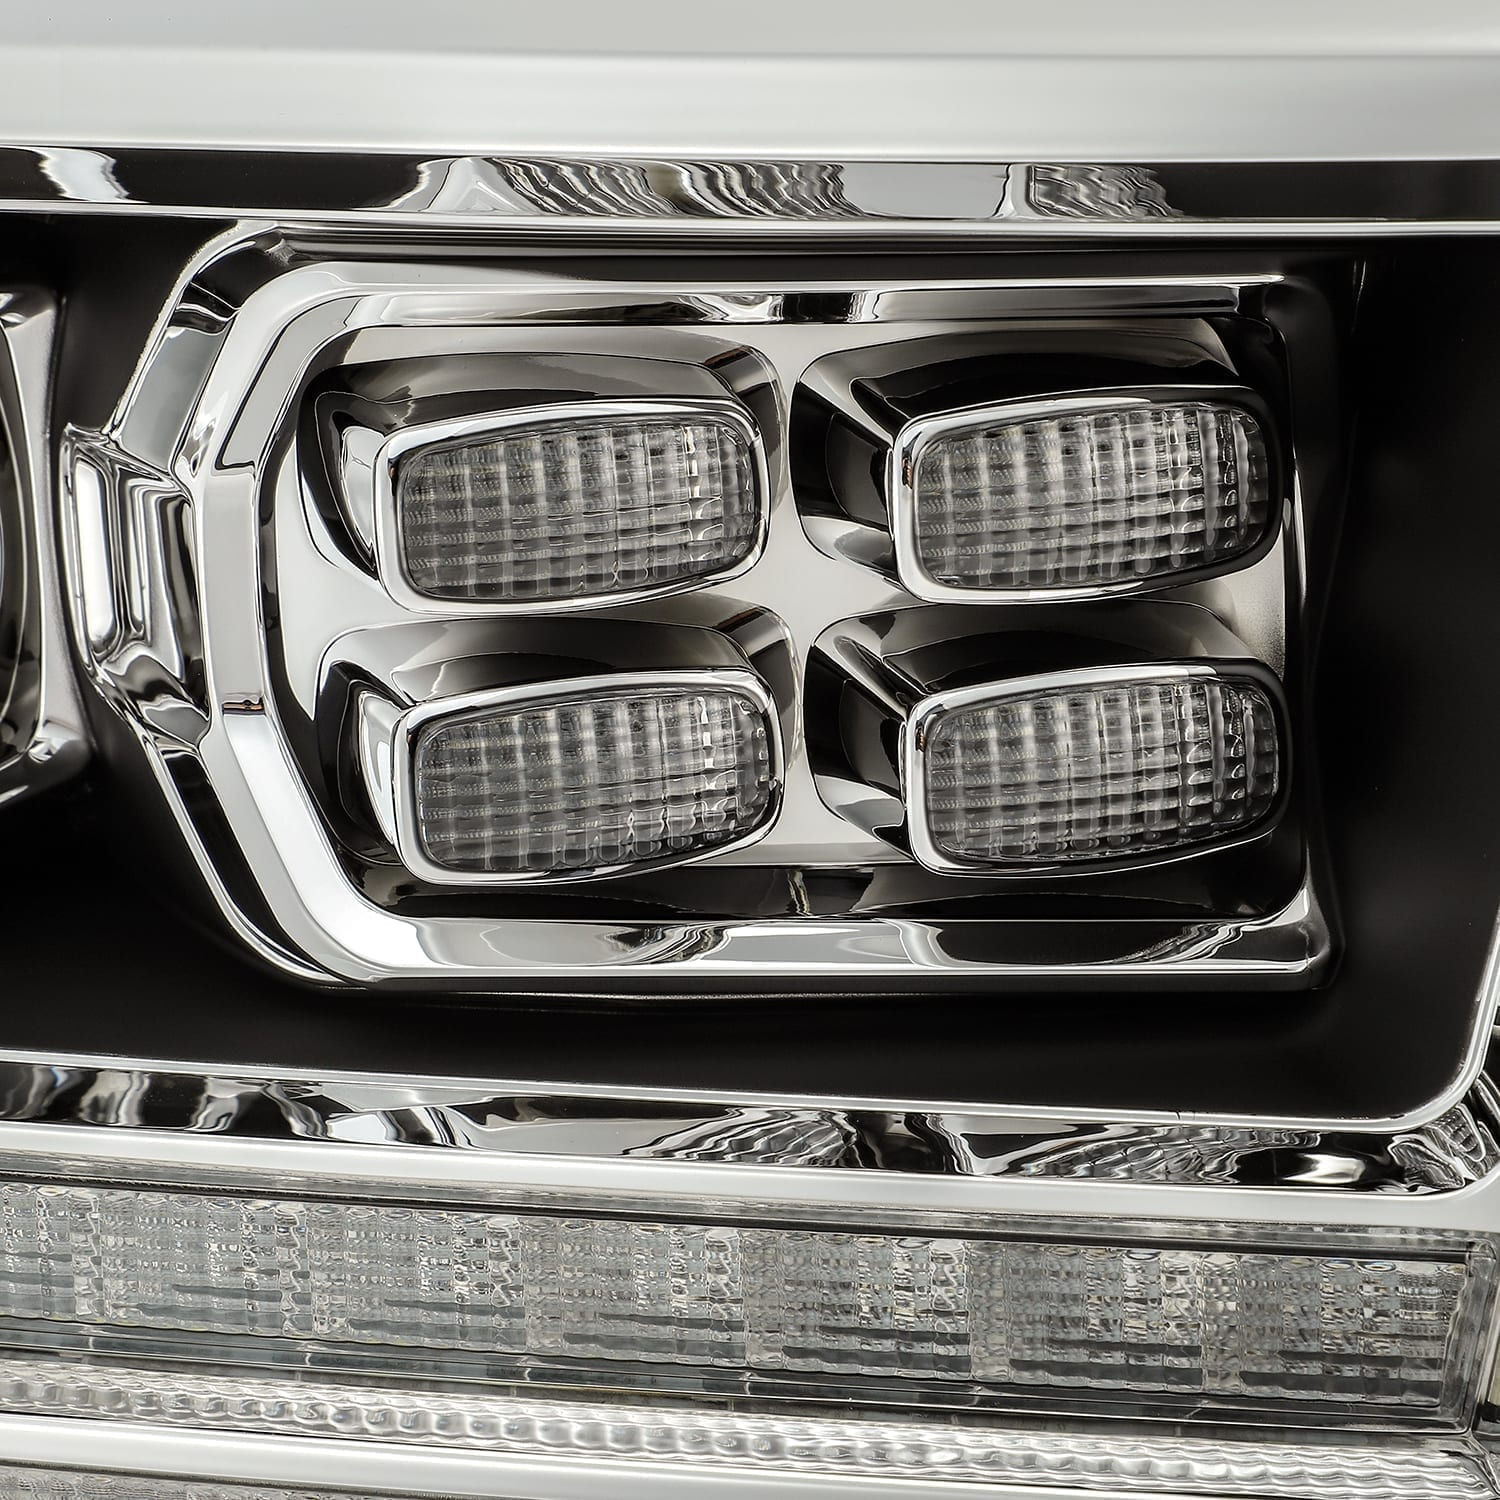 2009 2010 2011 2012 2013 2014 2015 2016 2017 2018 Dodge Ram 5th Gen 2500 Style PRO-Series Projector Headlights Black